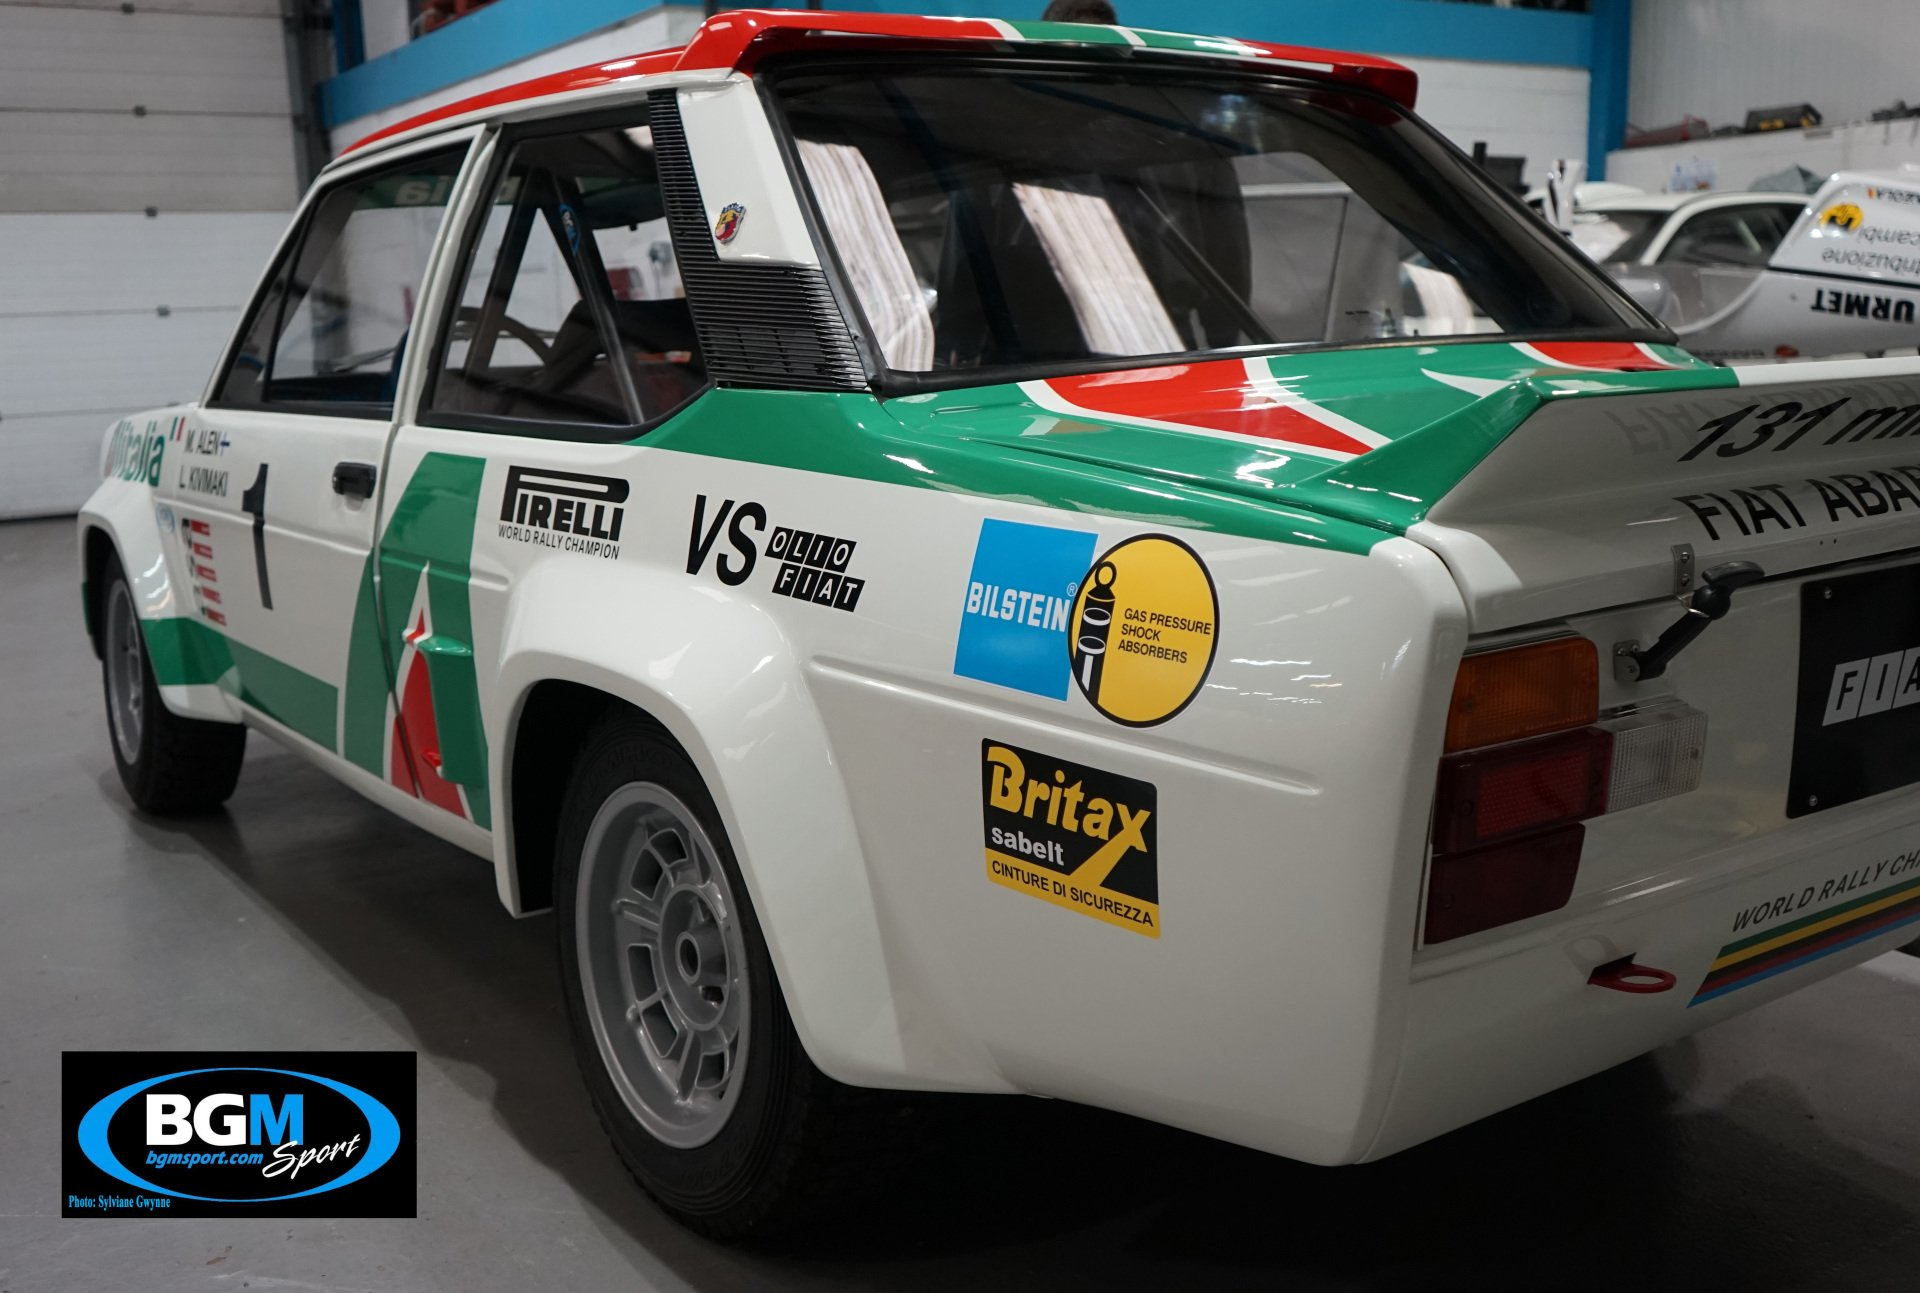 fiat-131-abarth-grp-4-rally-car-49